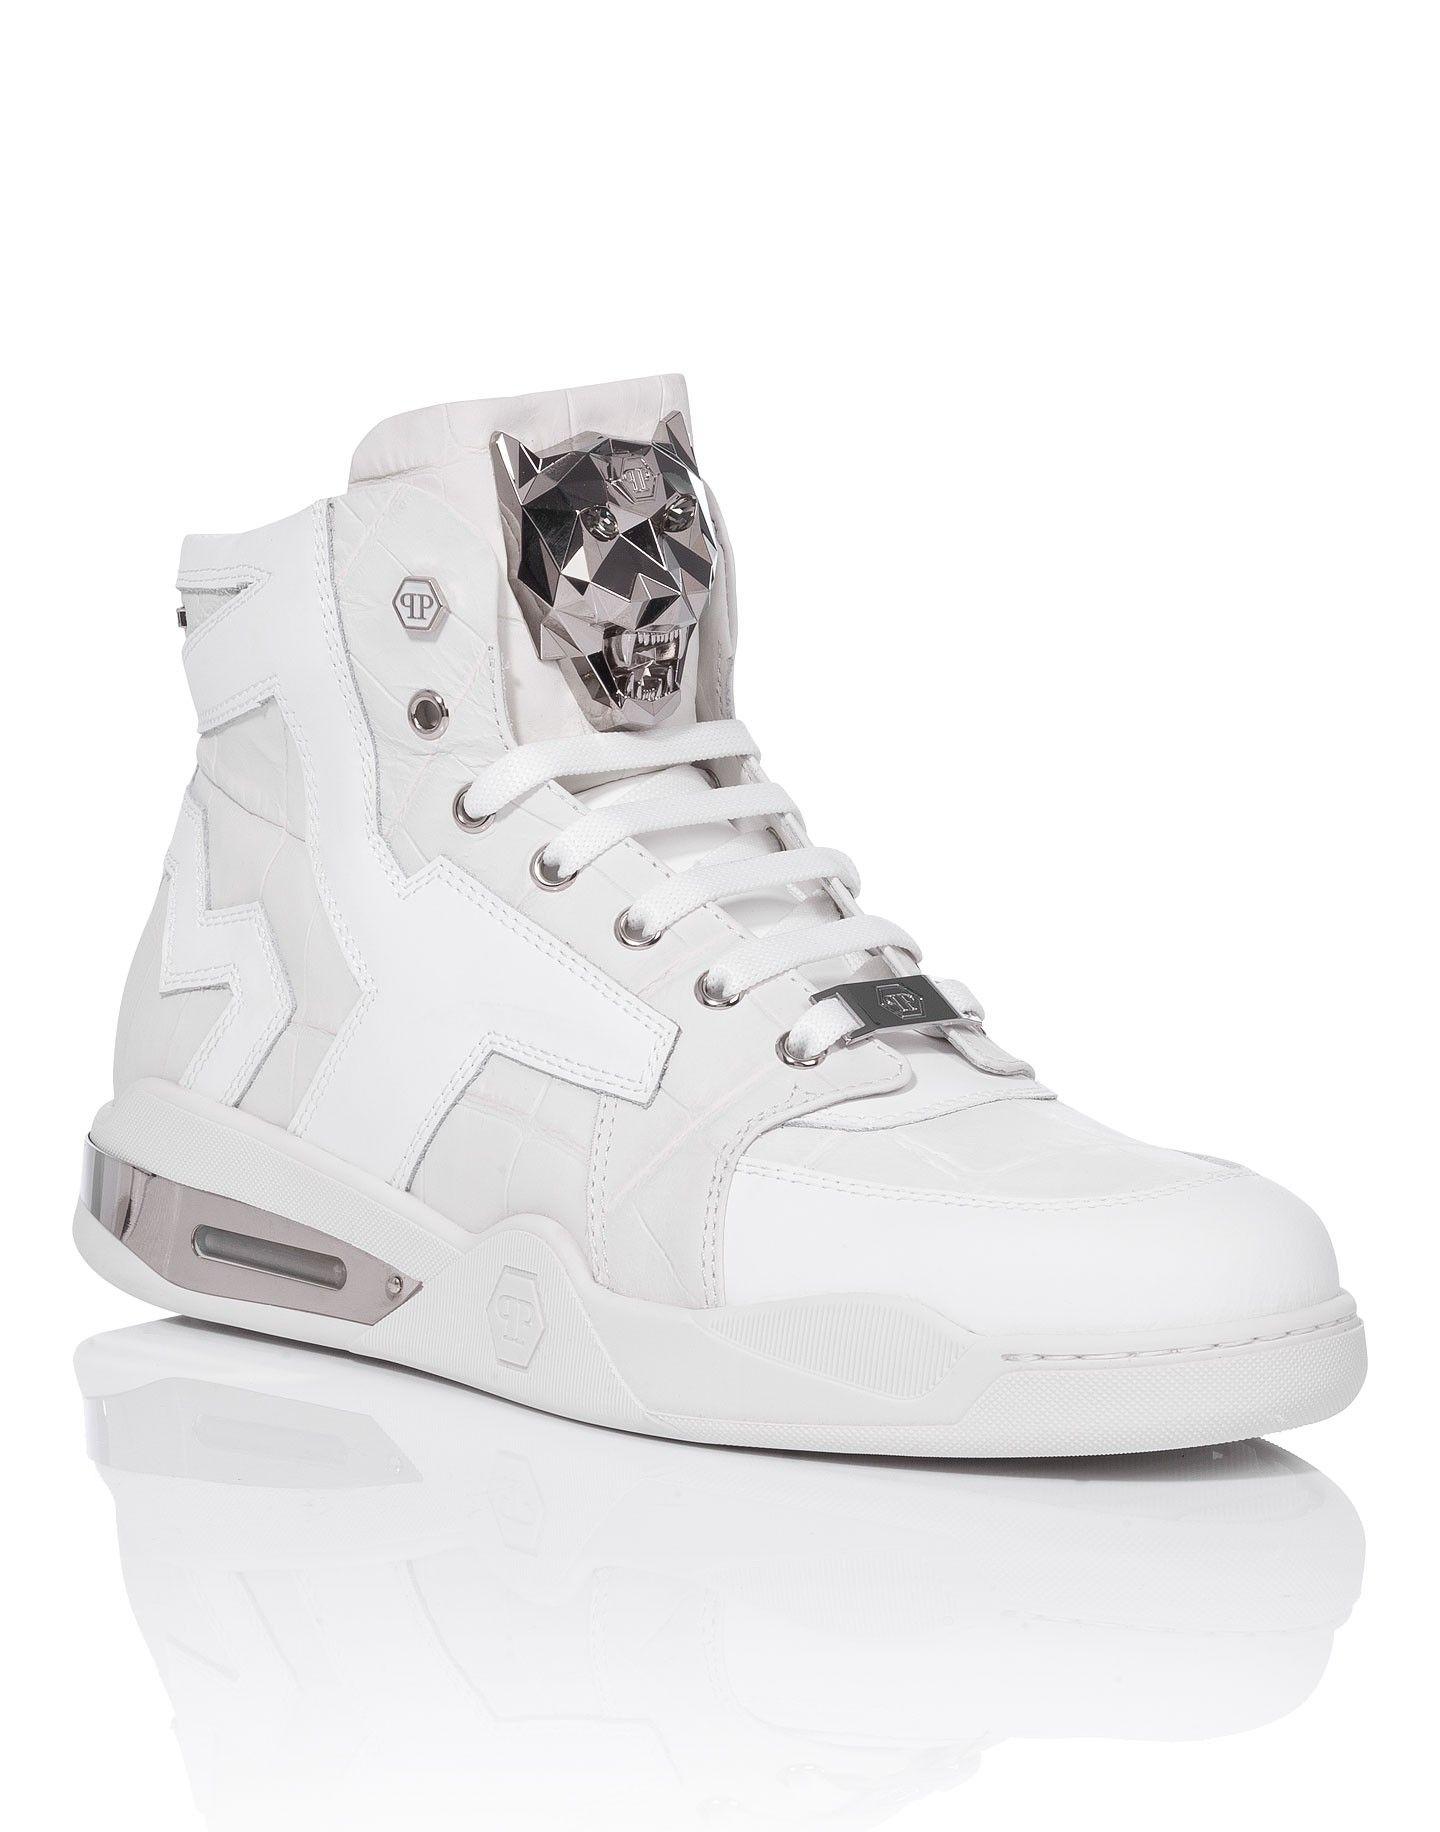 23d0d4067de PHILIPP PLEIN HIGH SNEAKERS